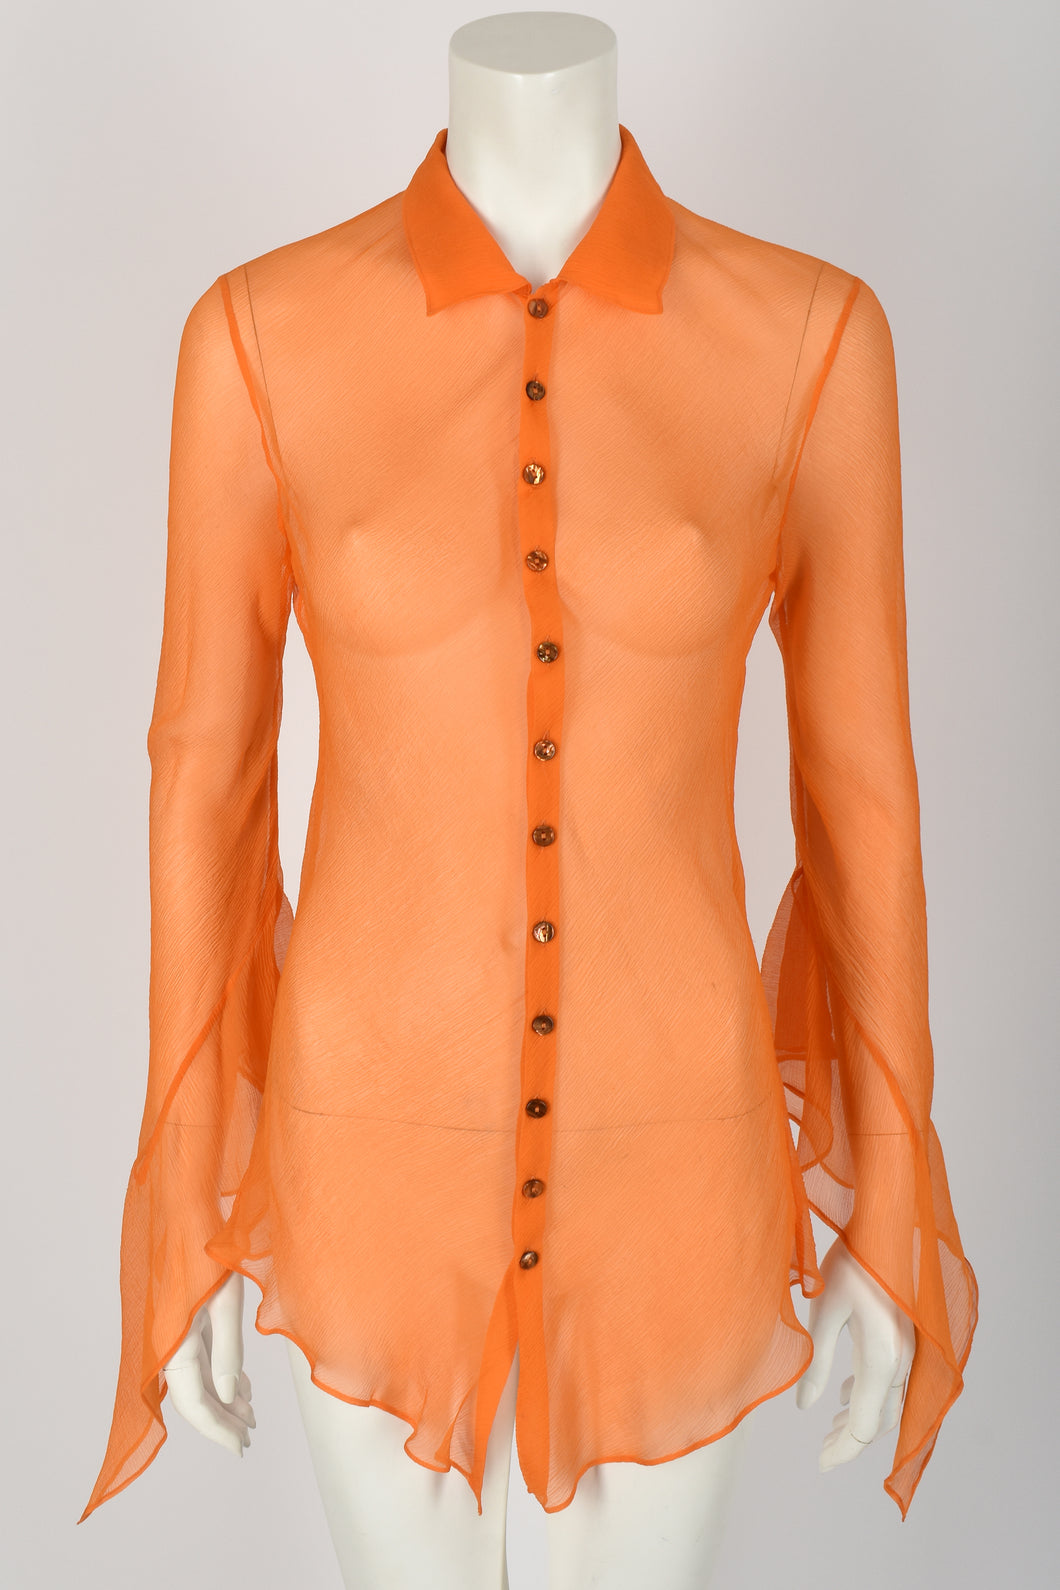 JEAN PAUL GAULTIER silk chiffon shirt with flared sleeves